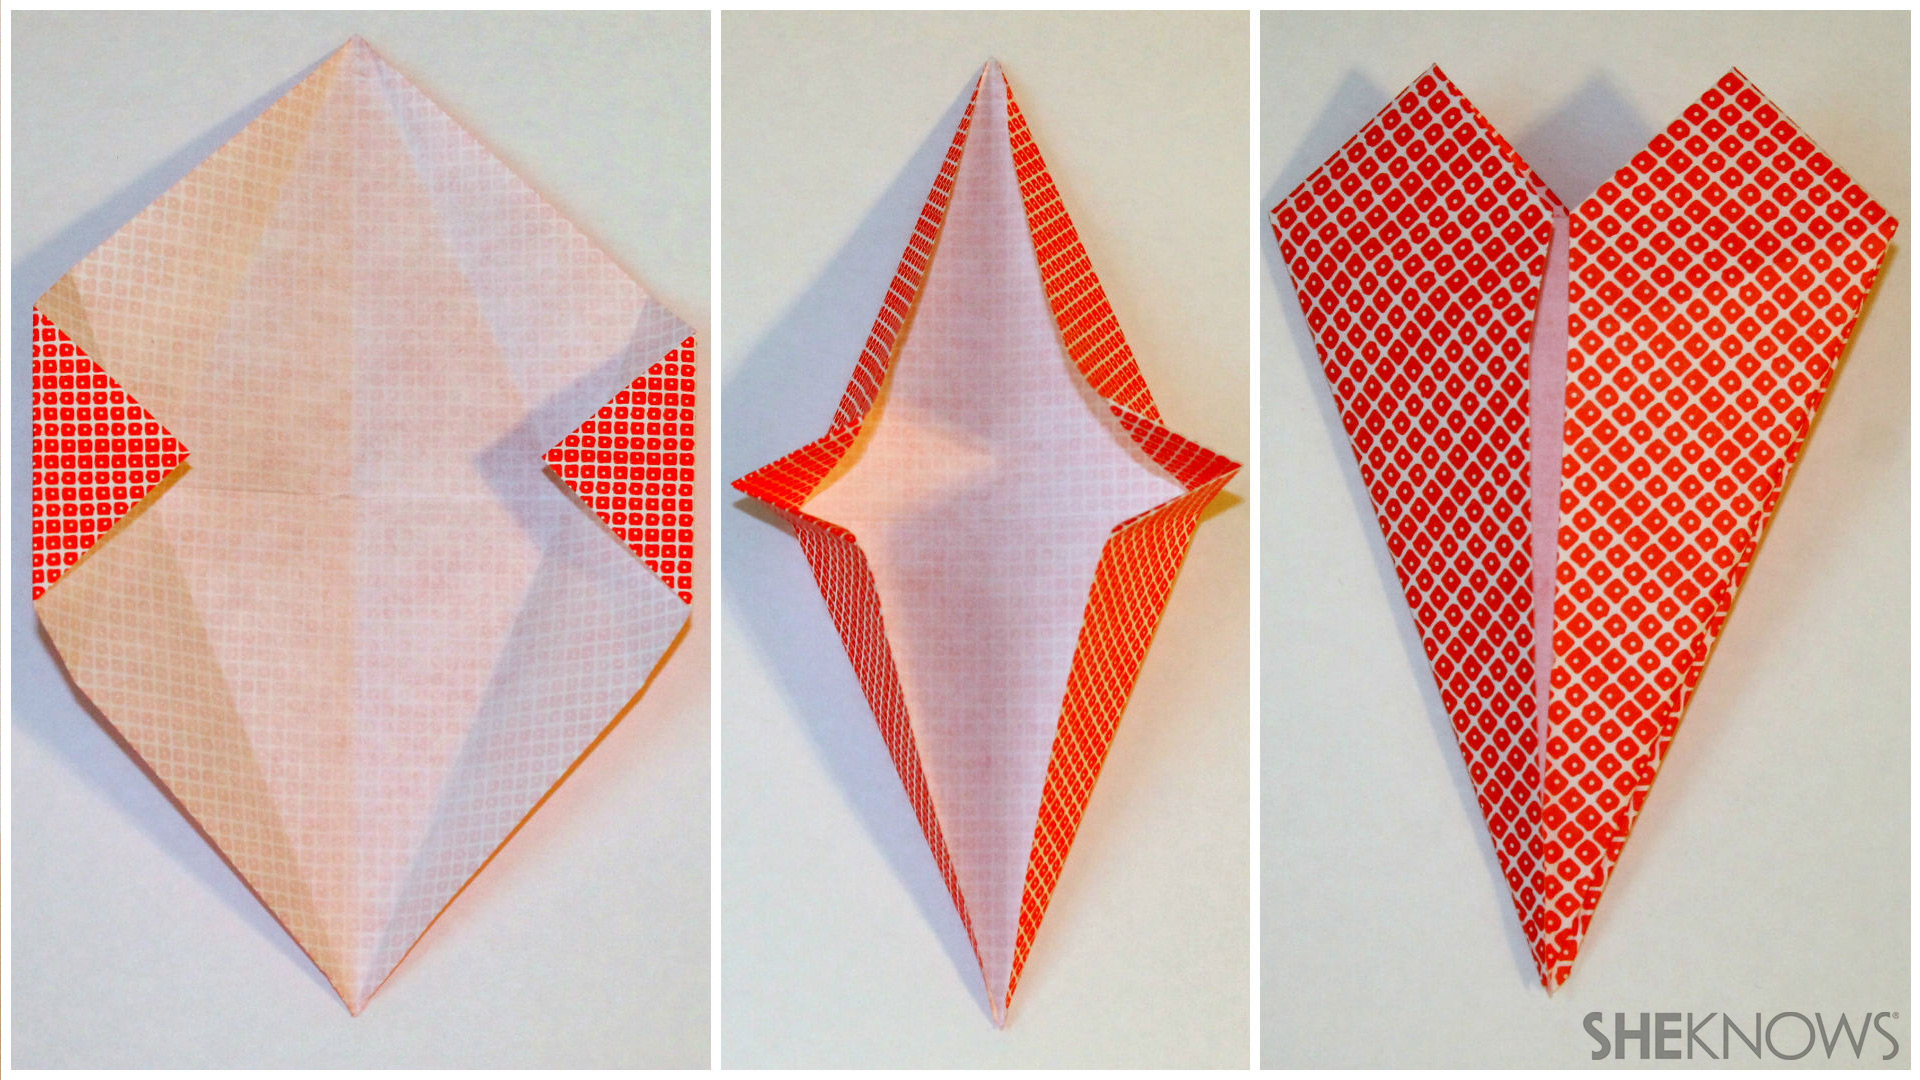 Making the heart shape out of origami paper